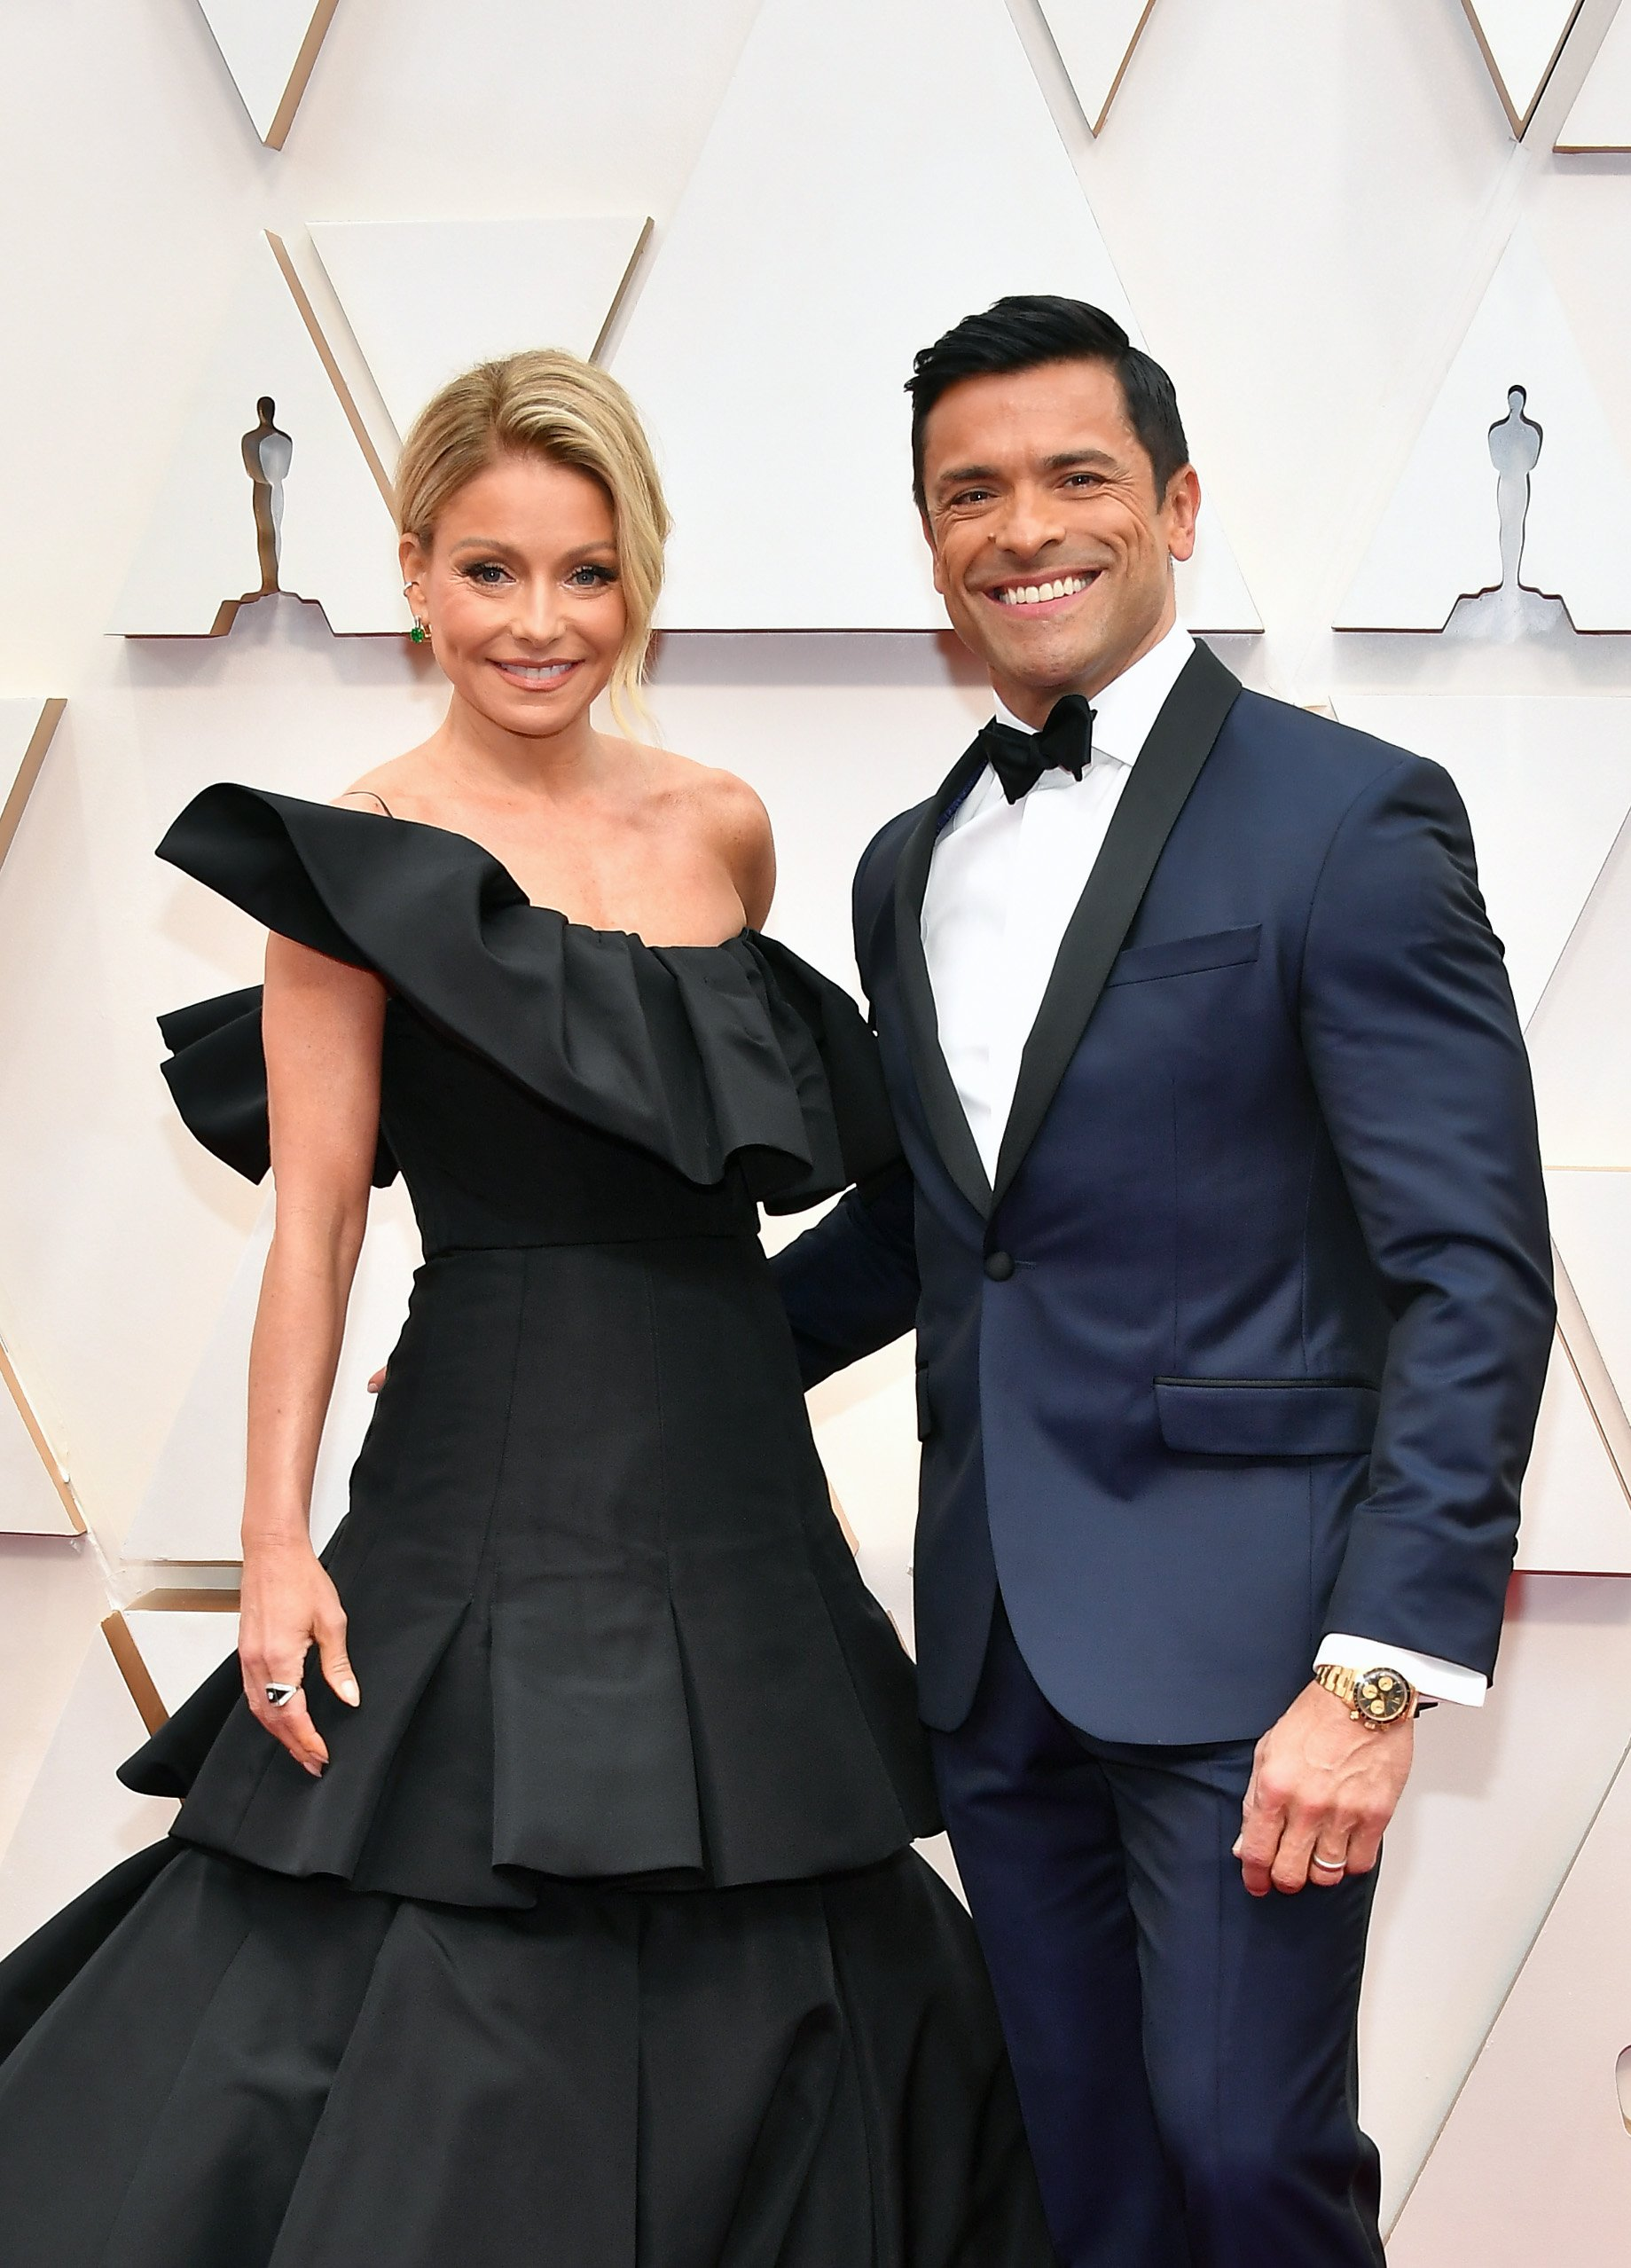 Kelly Ripa and Mark Consuelos attend the 92nd Annual Academy Awards at Hollywood and Highland on February 09, 2020 in Hollywood, California.   Source : Getty Images